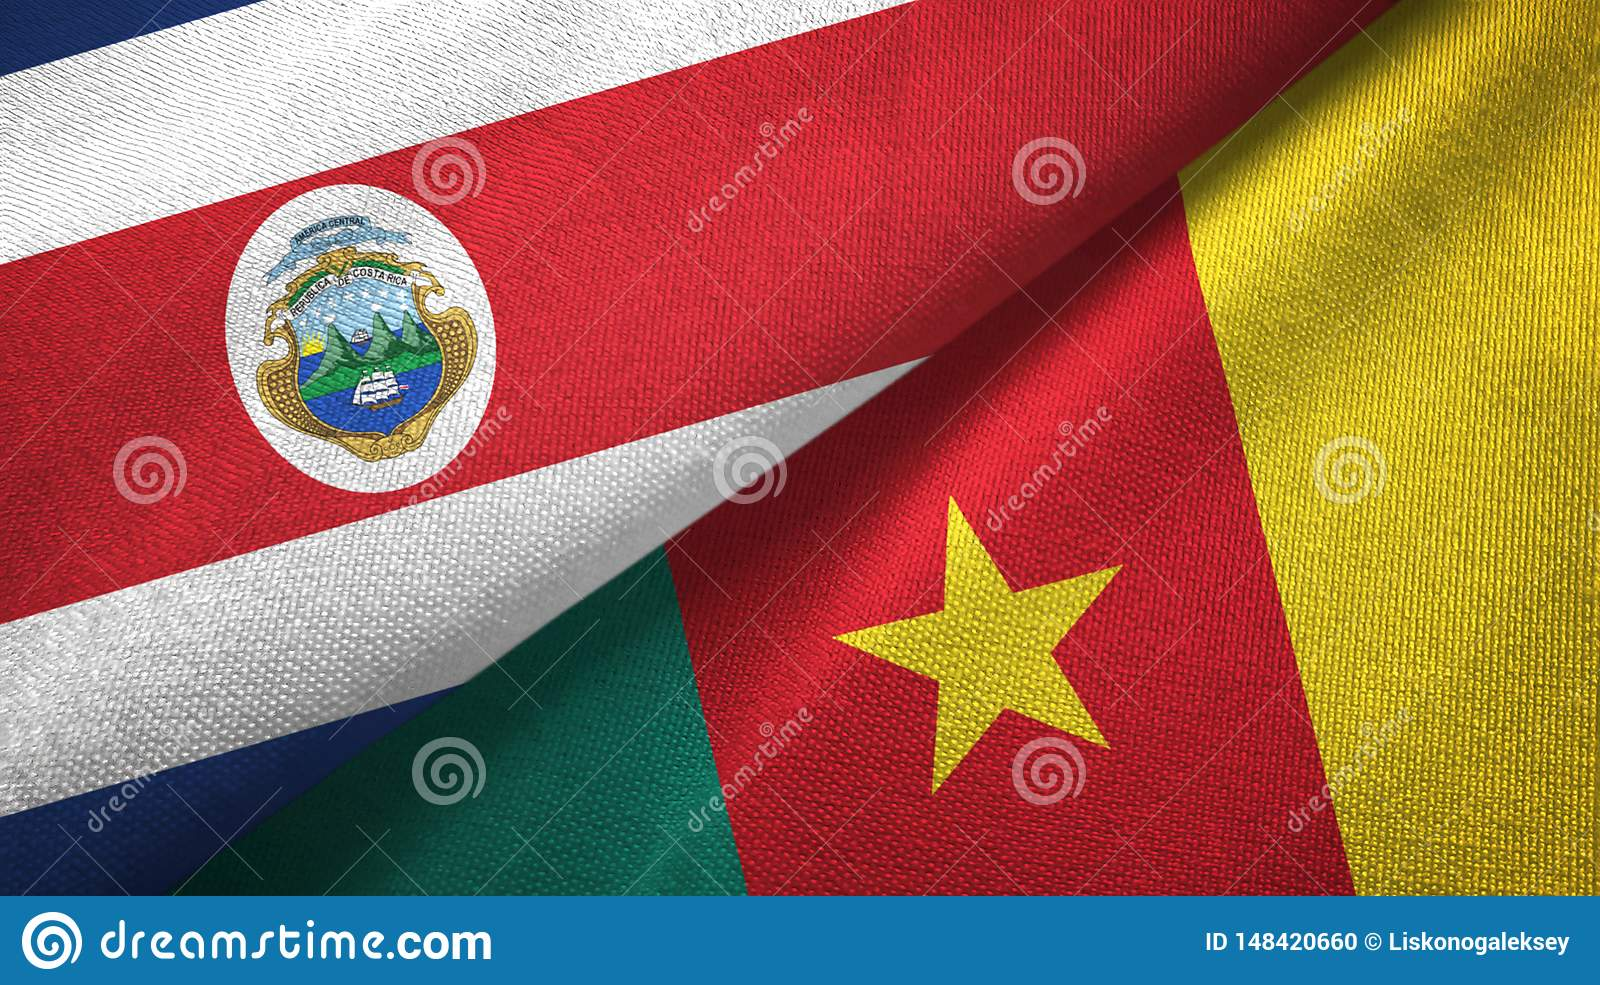 Costa Rica and Cameroon two flags textile cloth, fabric texture